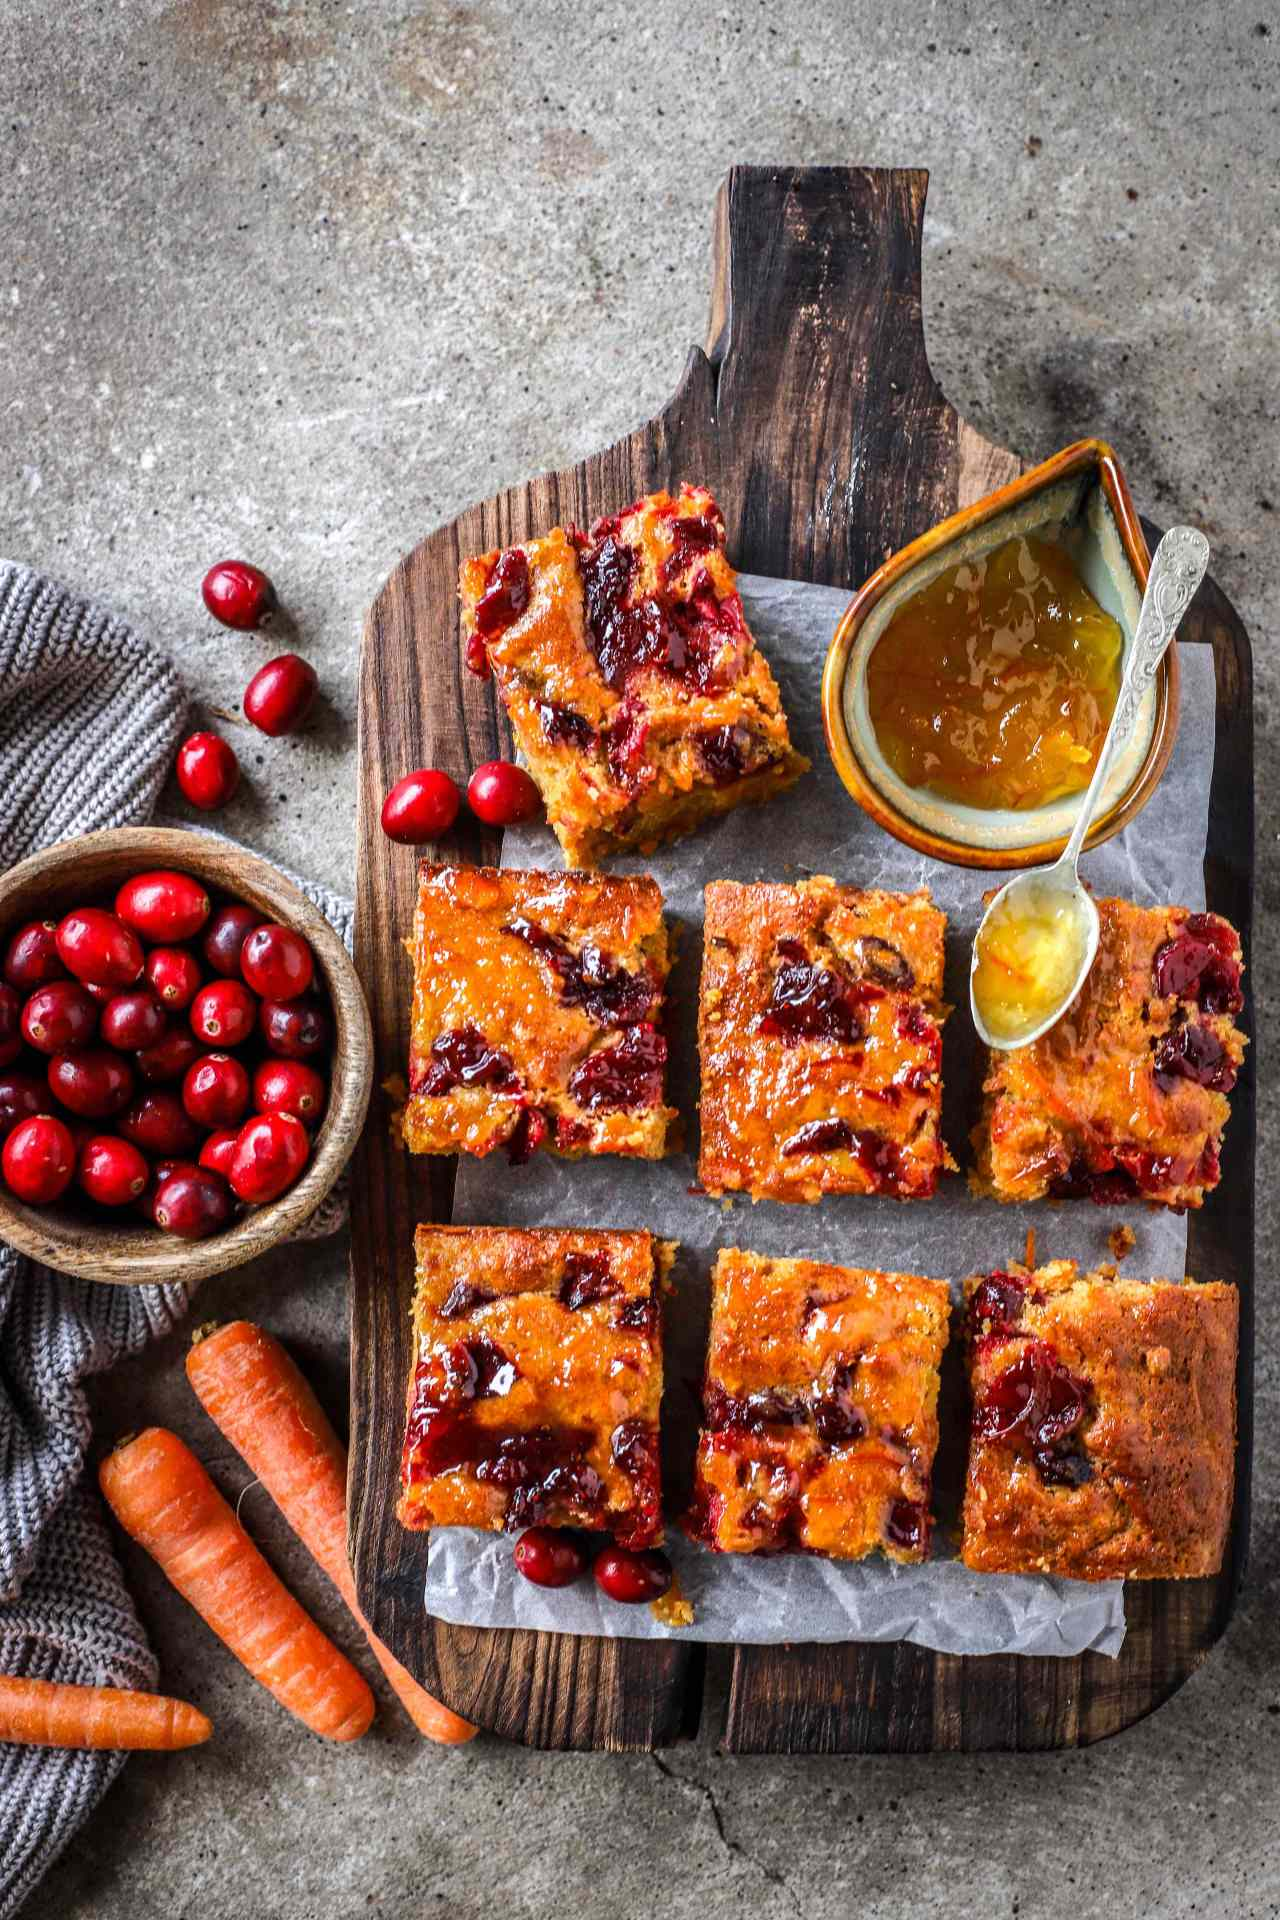 """Marmalade Carrot Cake with tangy swirls of bursting cranberries is the perfect """"just-in-case"""" cake to have on standby during the festive season. #winter #cake #baking #marmalade #carrotcake #christmas"""